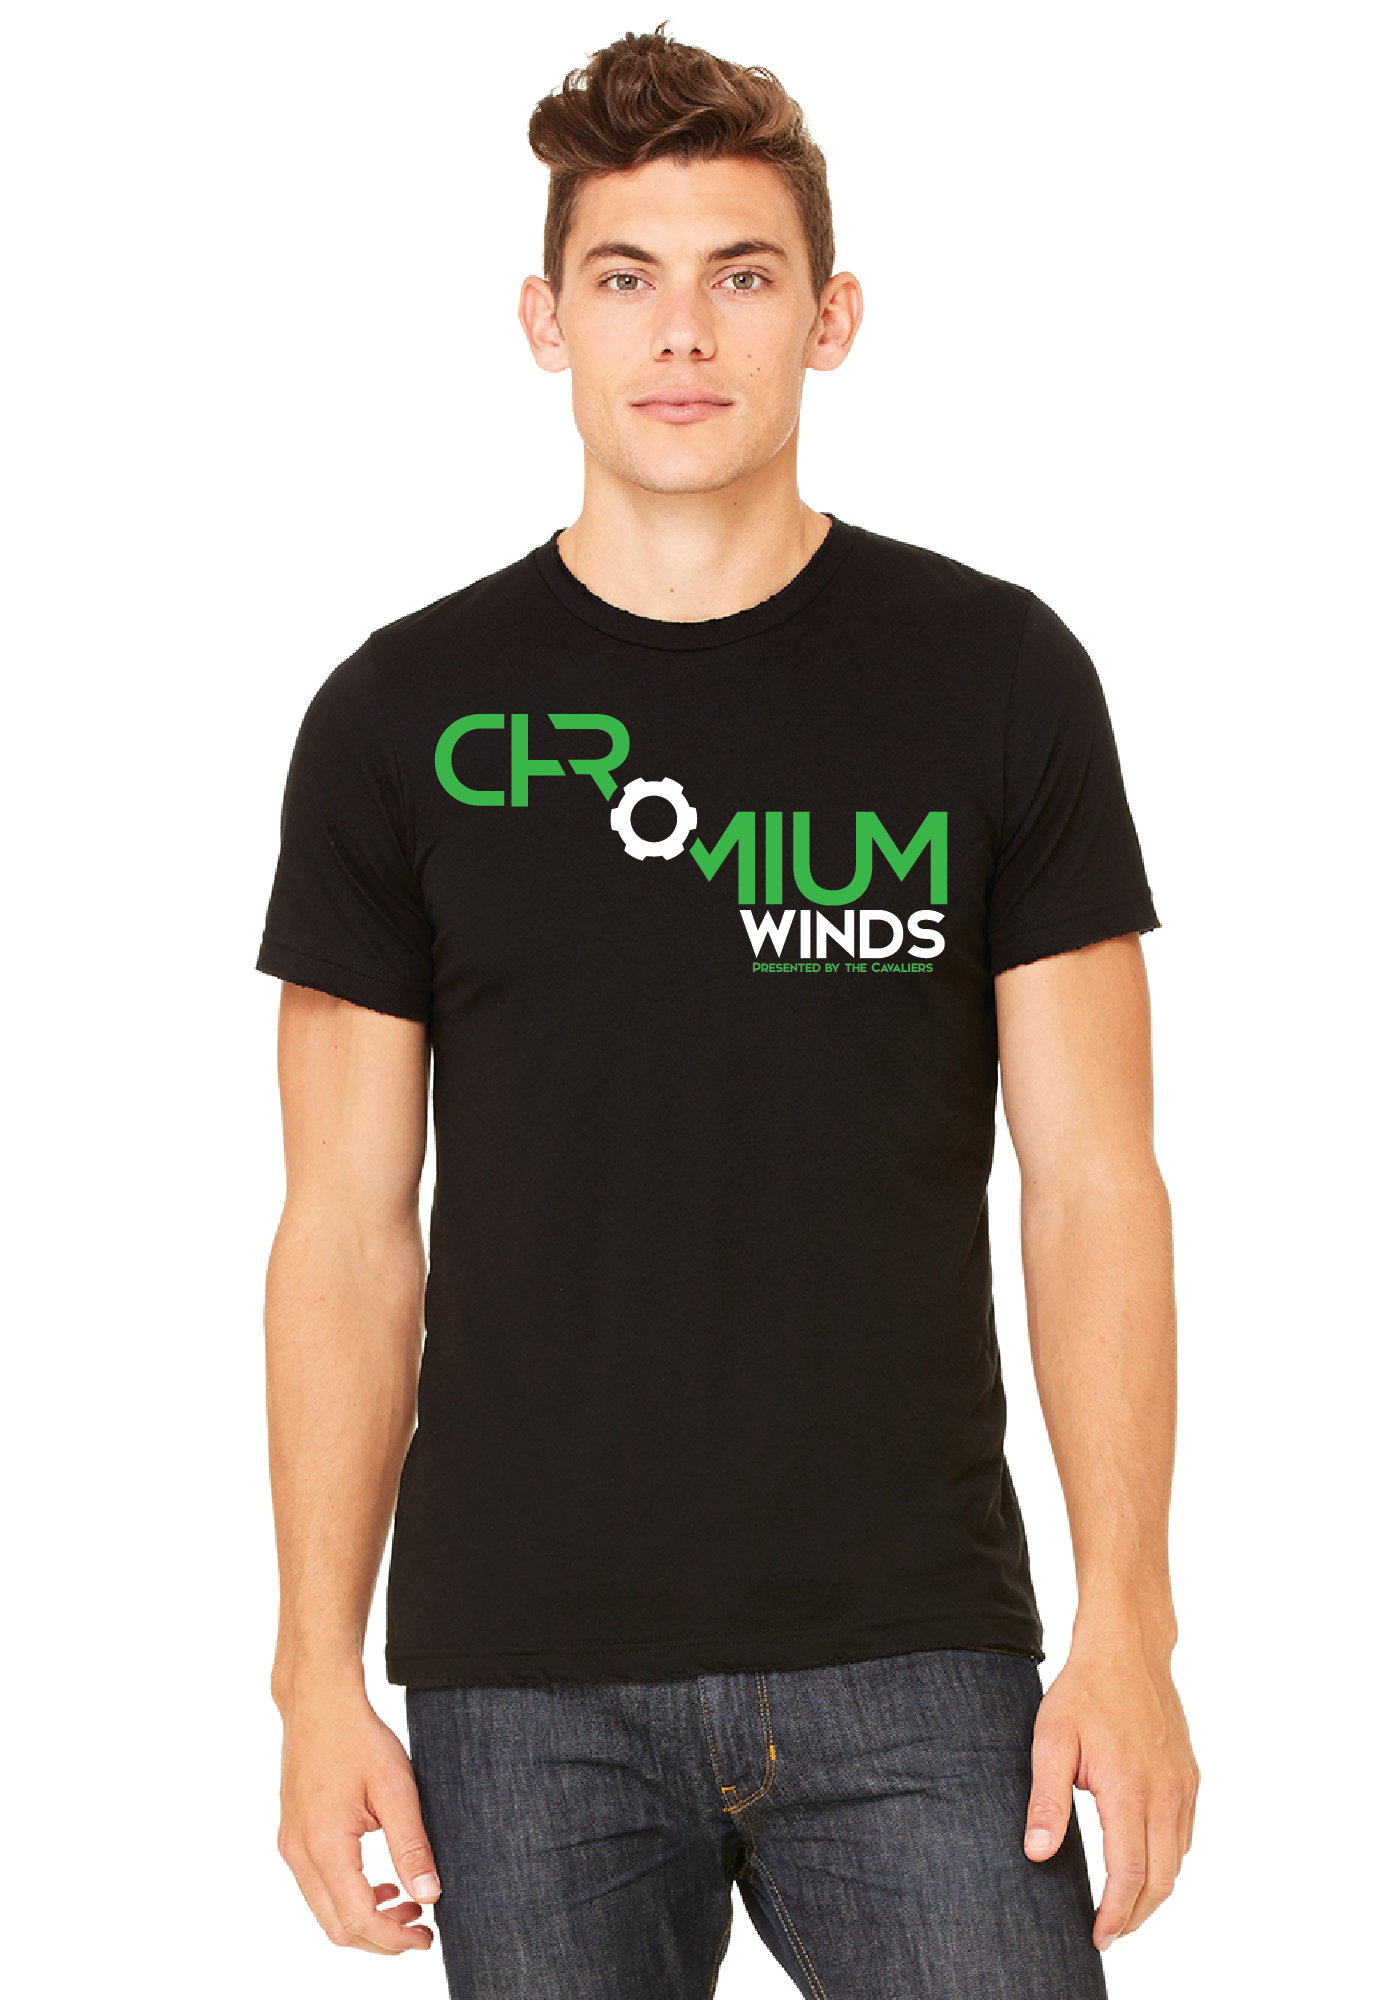 Chromium Winds T-Shirt